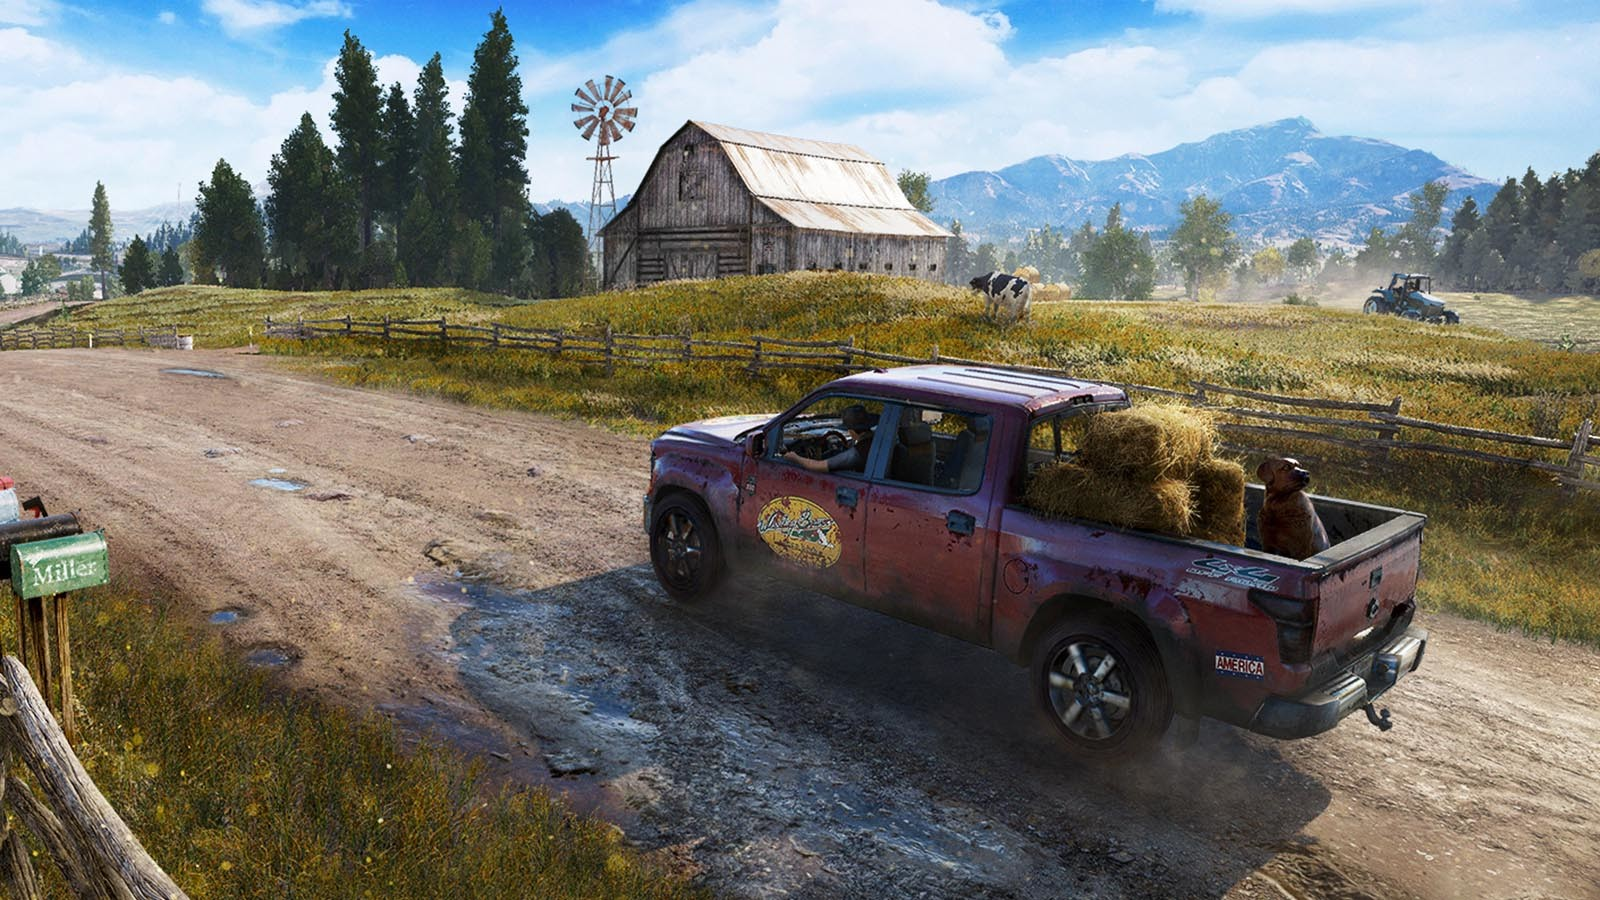 Far Cry 5 [Uplay Ubisoft Connect] for PC - Buy now